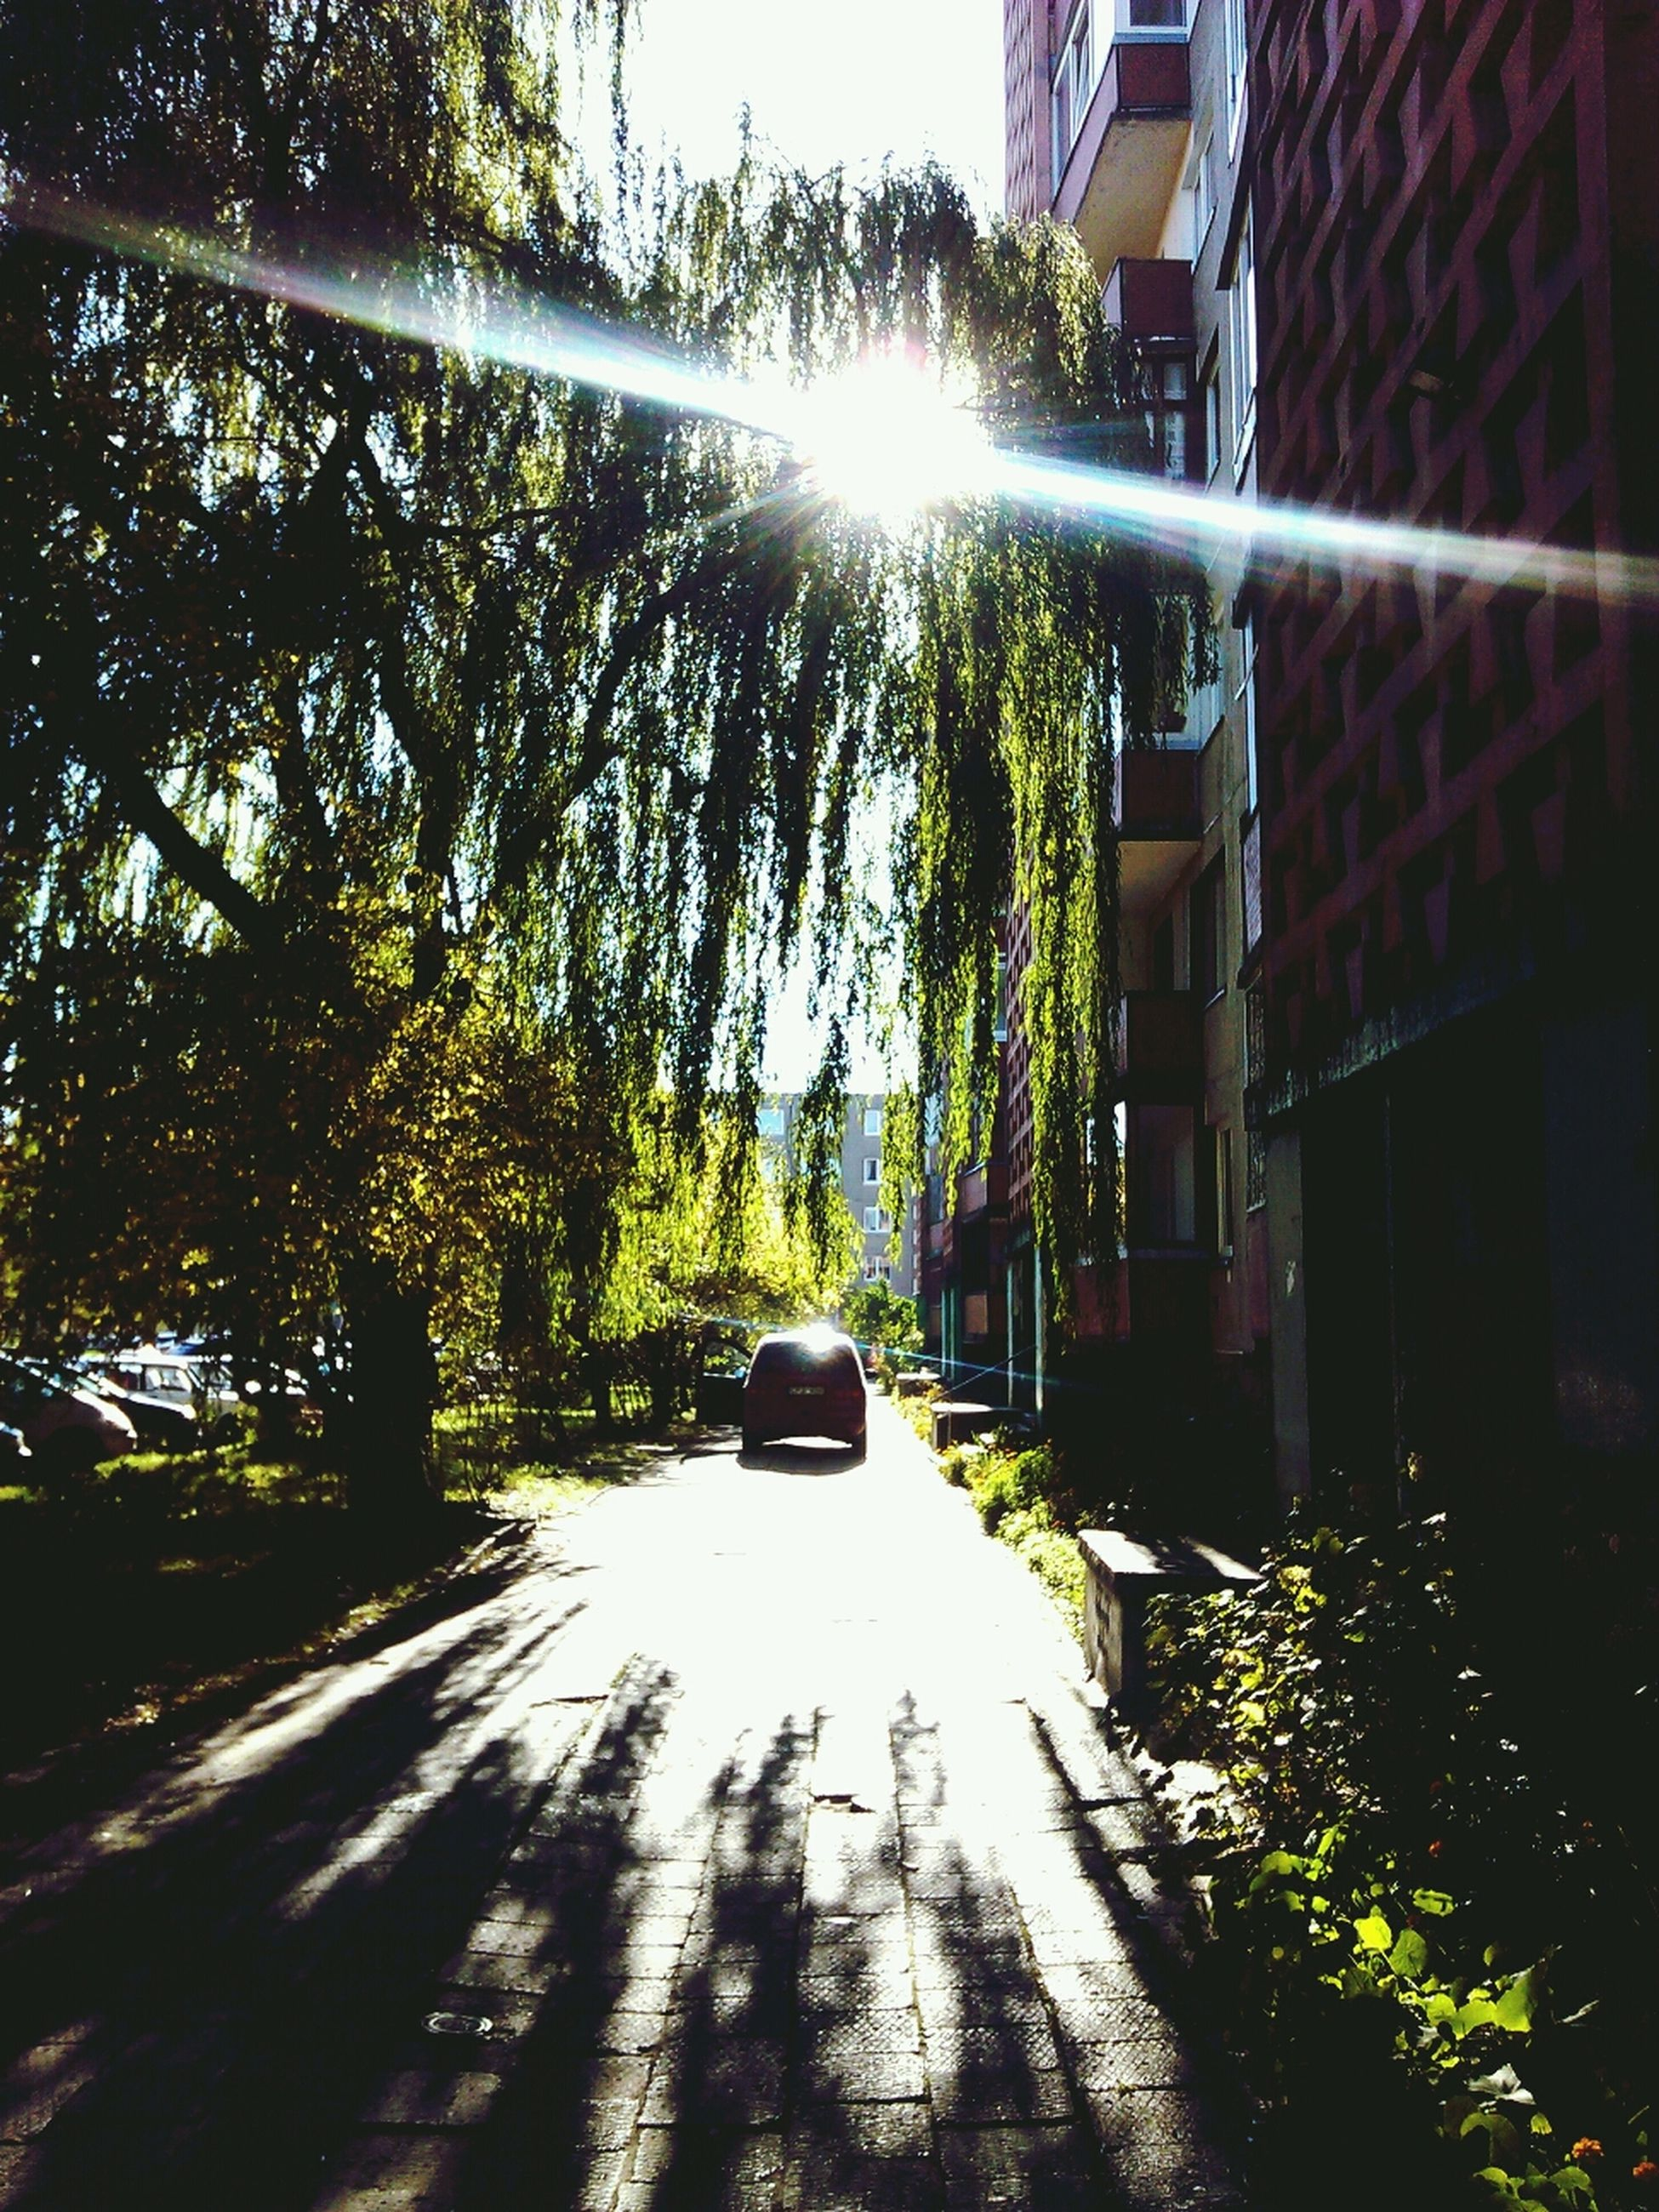 tree, transportation, building exterior, built structure, architecture, the way forward, street, sunlight, road, car, land vehicle, street light, mode of transport, sunbeam, sun, city, day, outdoors, lens flare, diminishing perspective